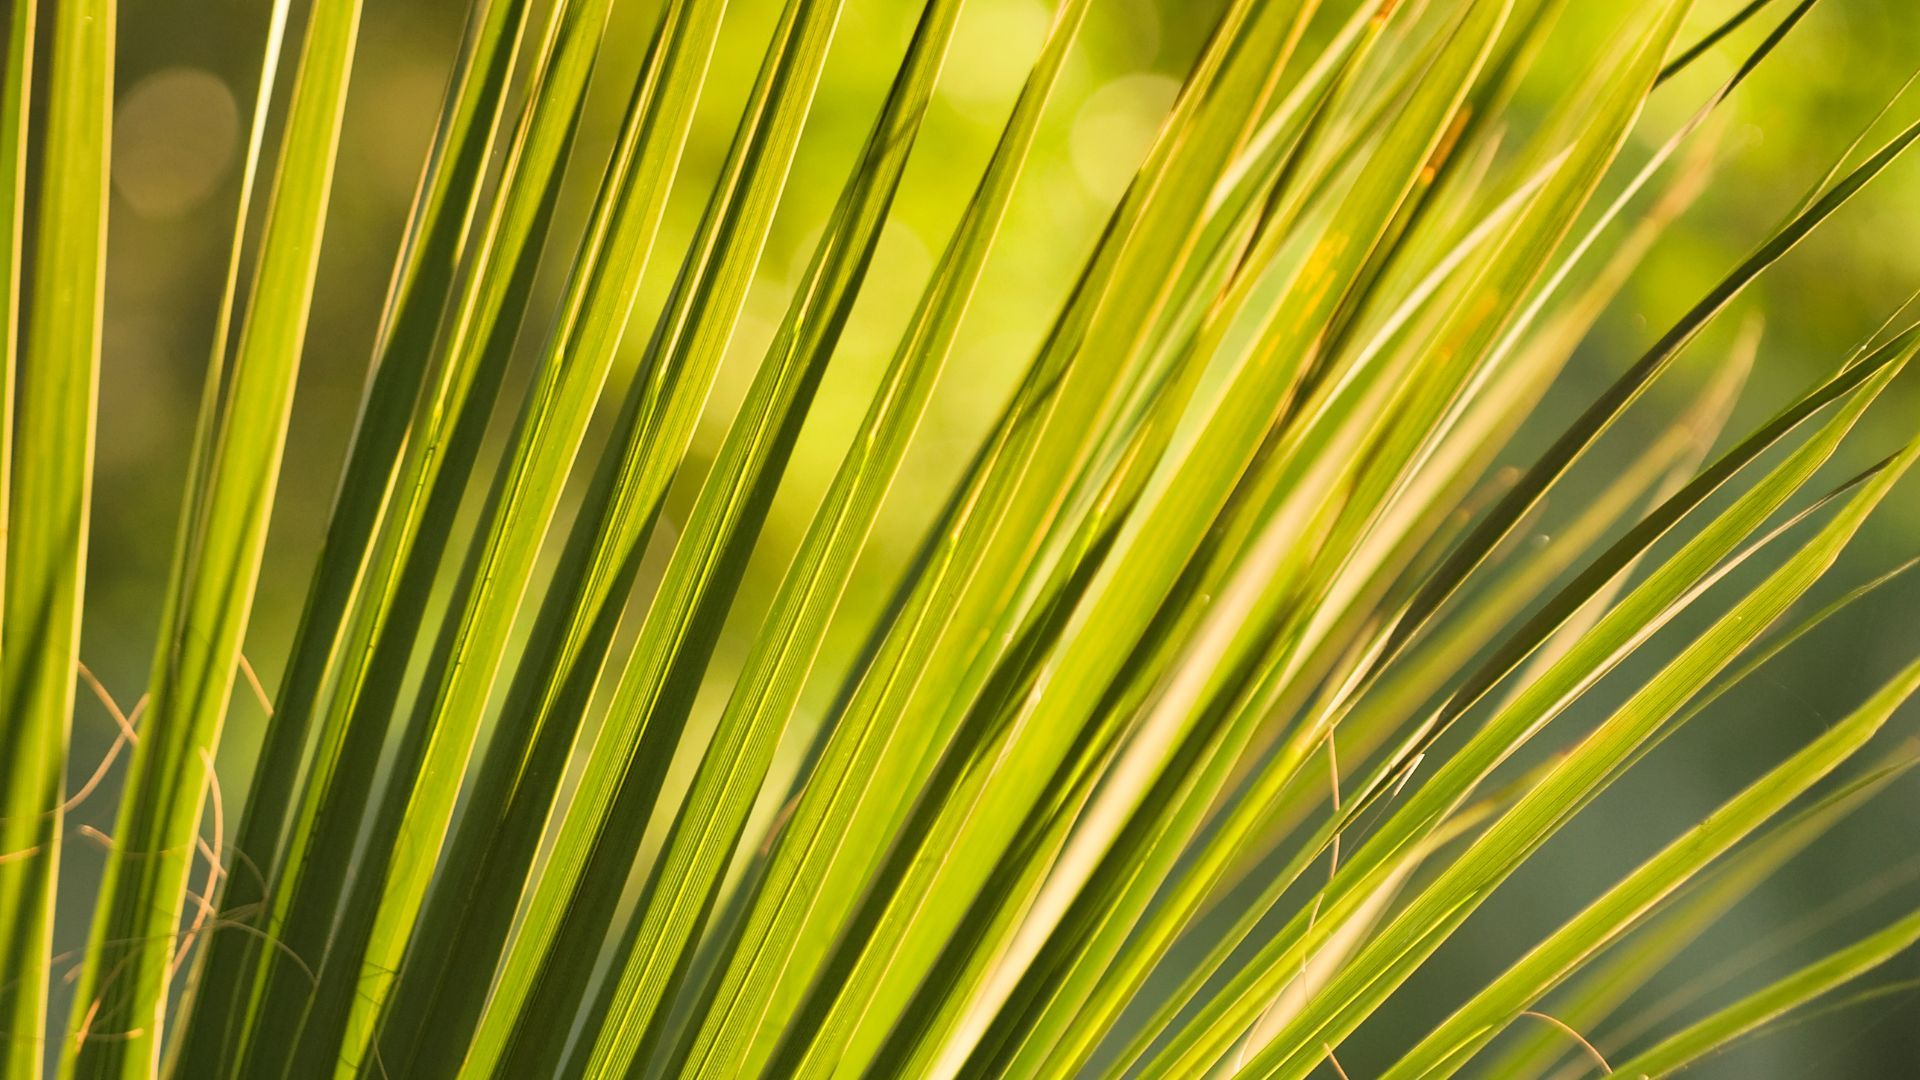 Saw Palmetto Extract